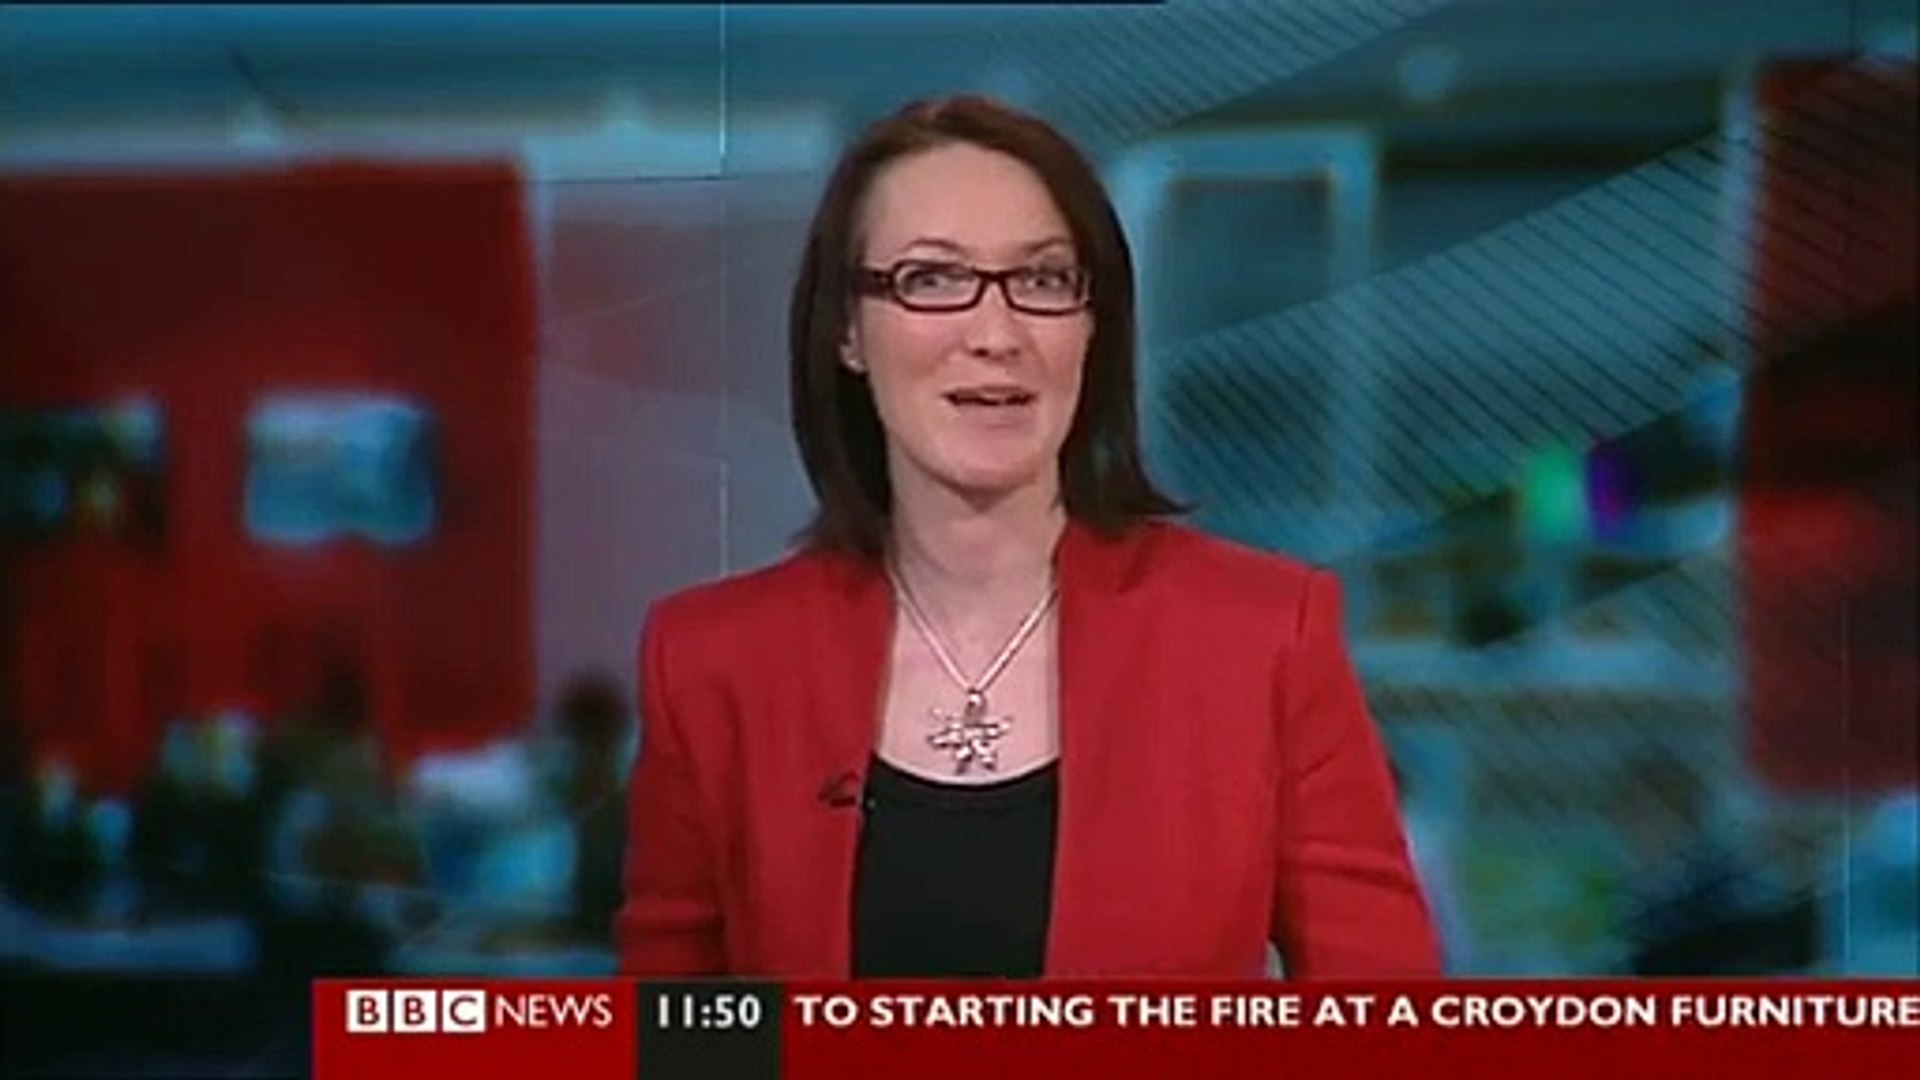 ALISON MITCHELL. BBC NEWS. 24.Feb.2012 Sports News Reviewed by Alison